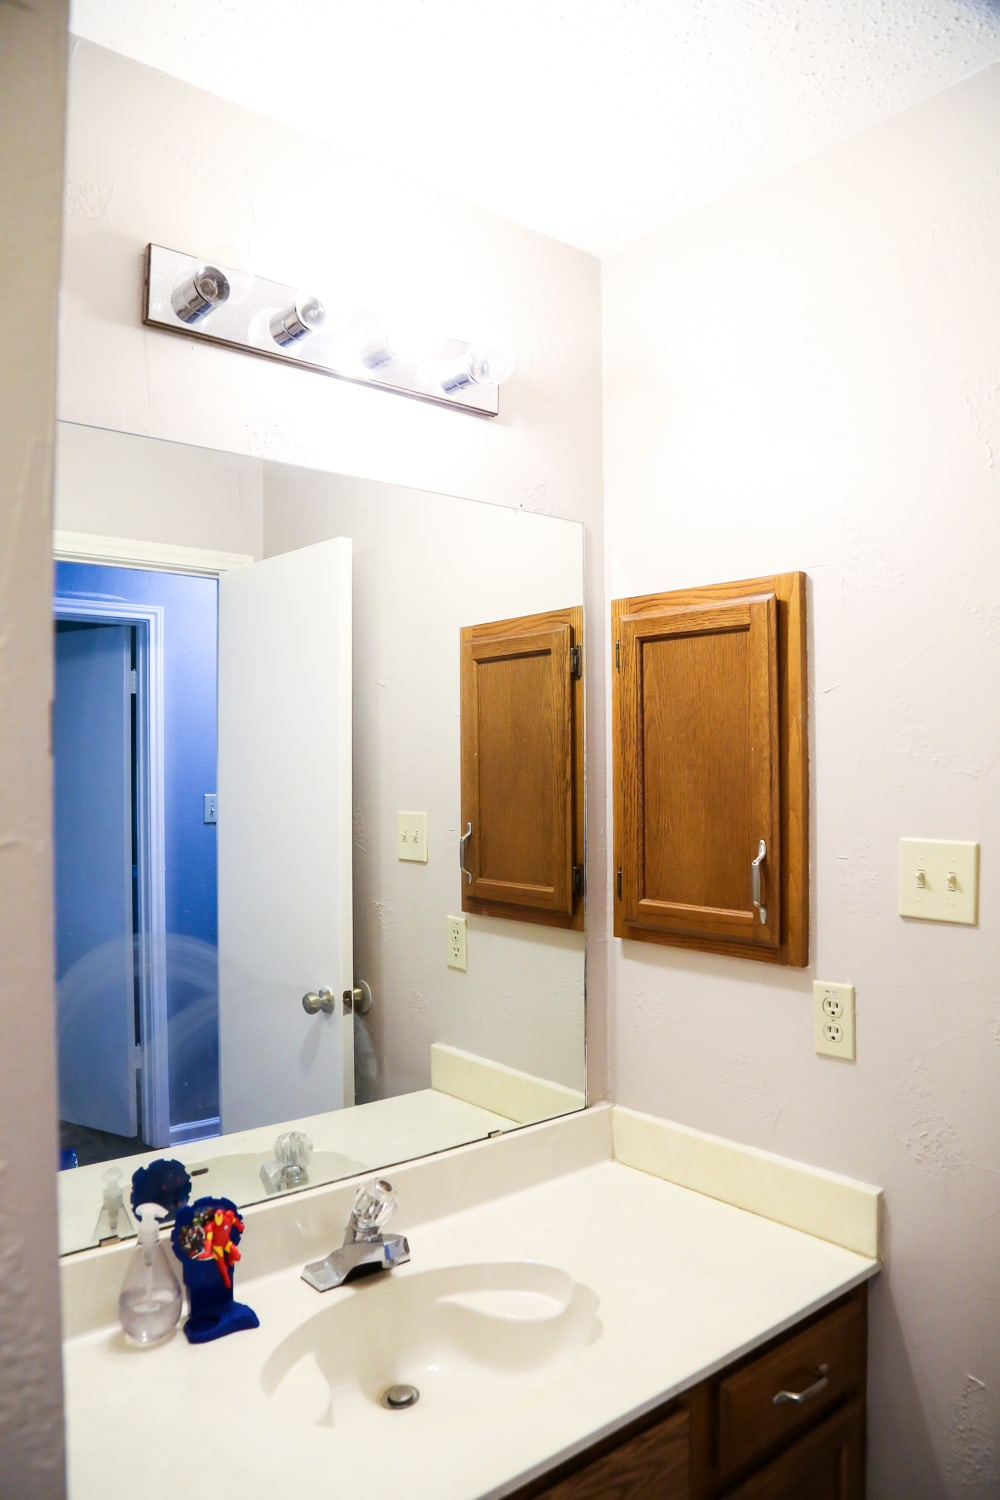 Cleaning bathroom walls before painting - This Entire Transformation Came Together With Just A Few Simple Projects We Painted The Walls We Painted The Cabinets And Replaced The Counter